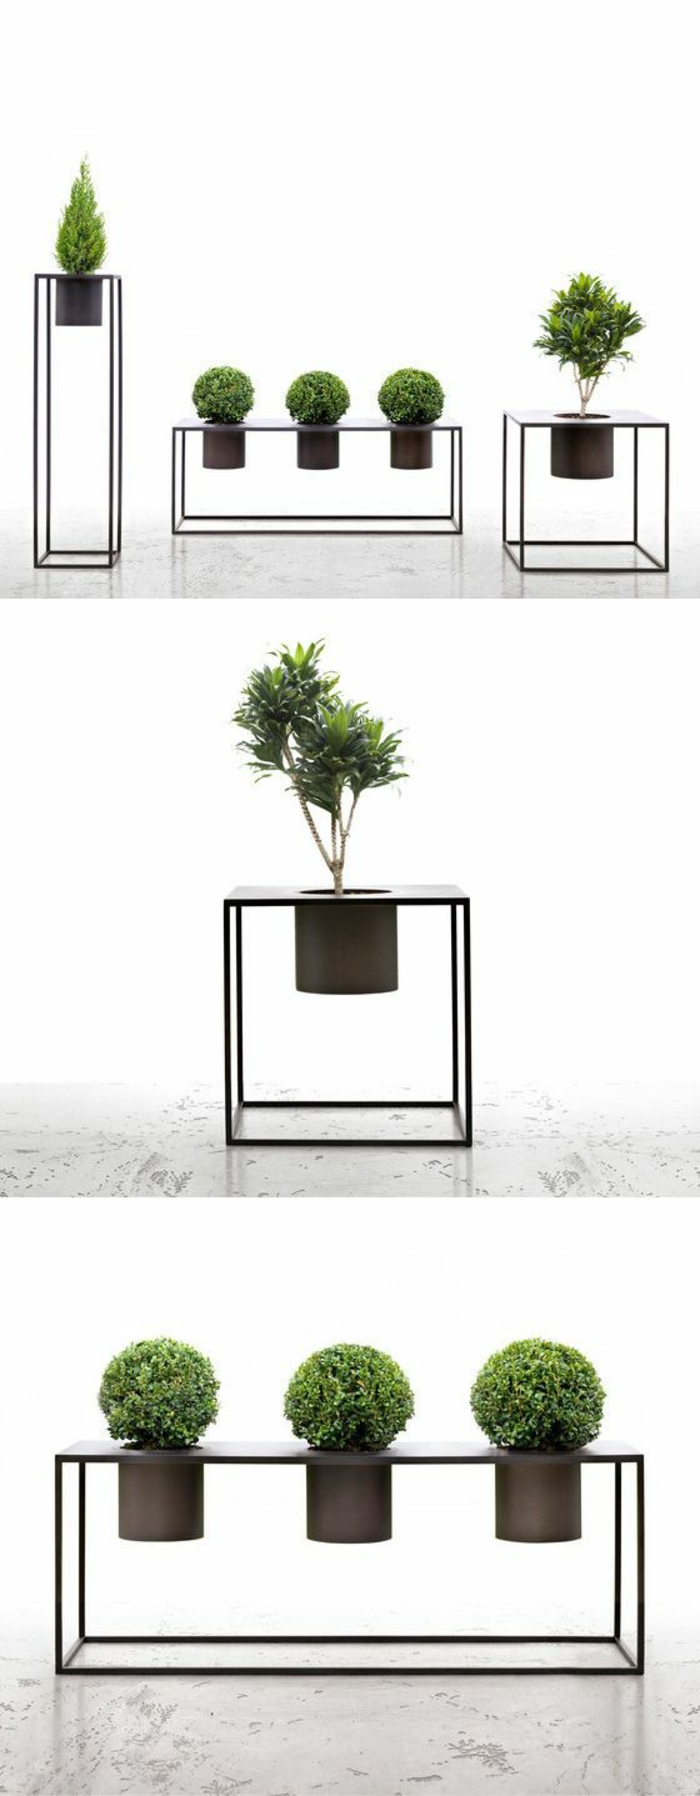 1001 id es pour porte plante les mod les en bois en. Black Bedroom Furniture Sets. Home Design Ideas